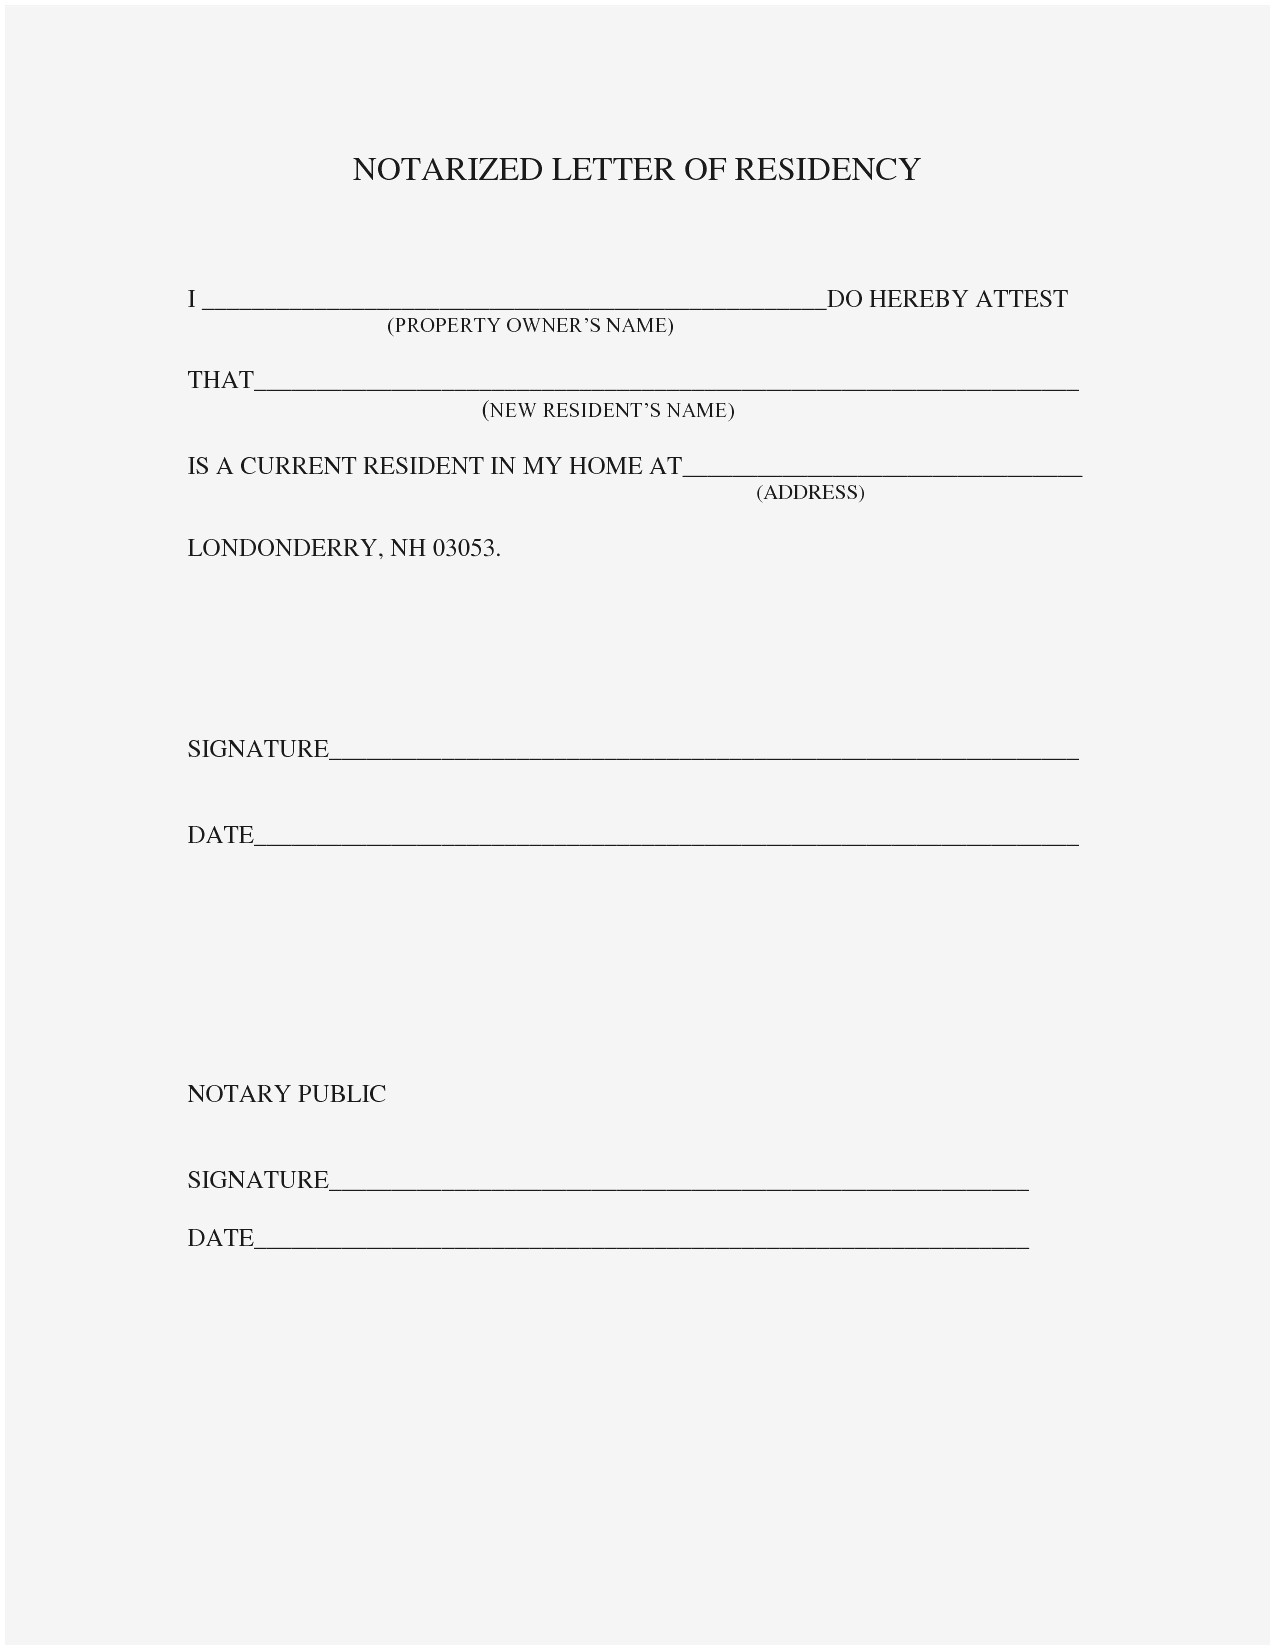 notarized letter template for residency printable notarized letter residency template samples how to